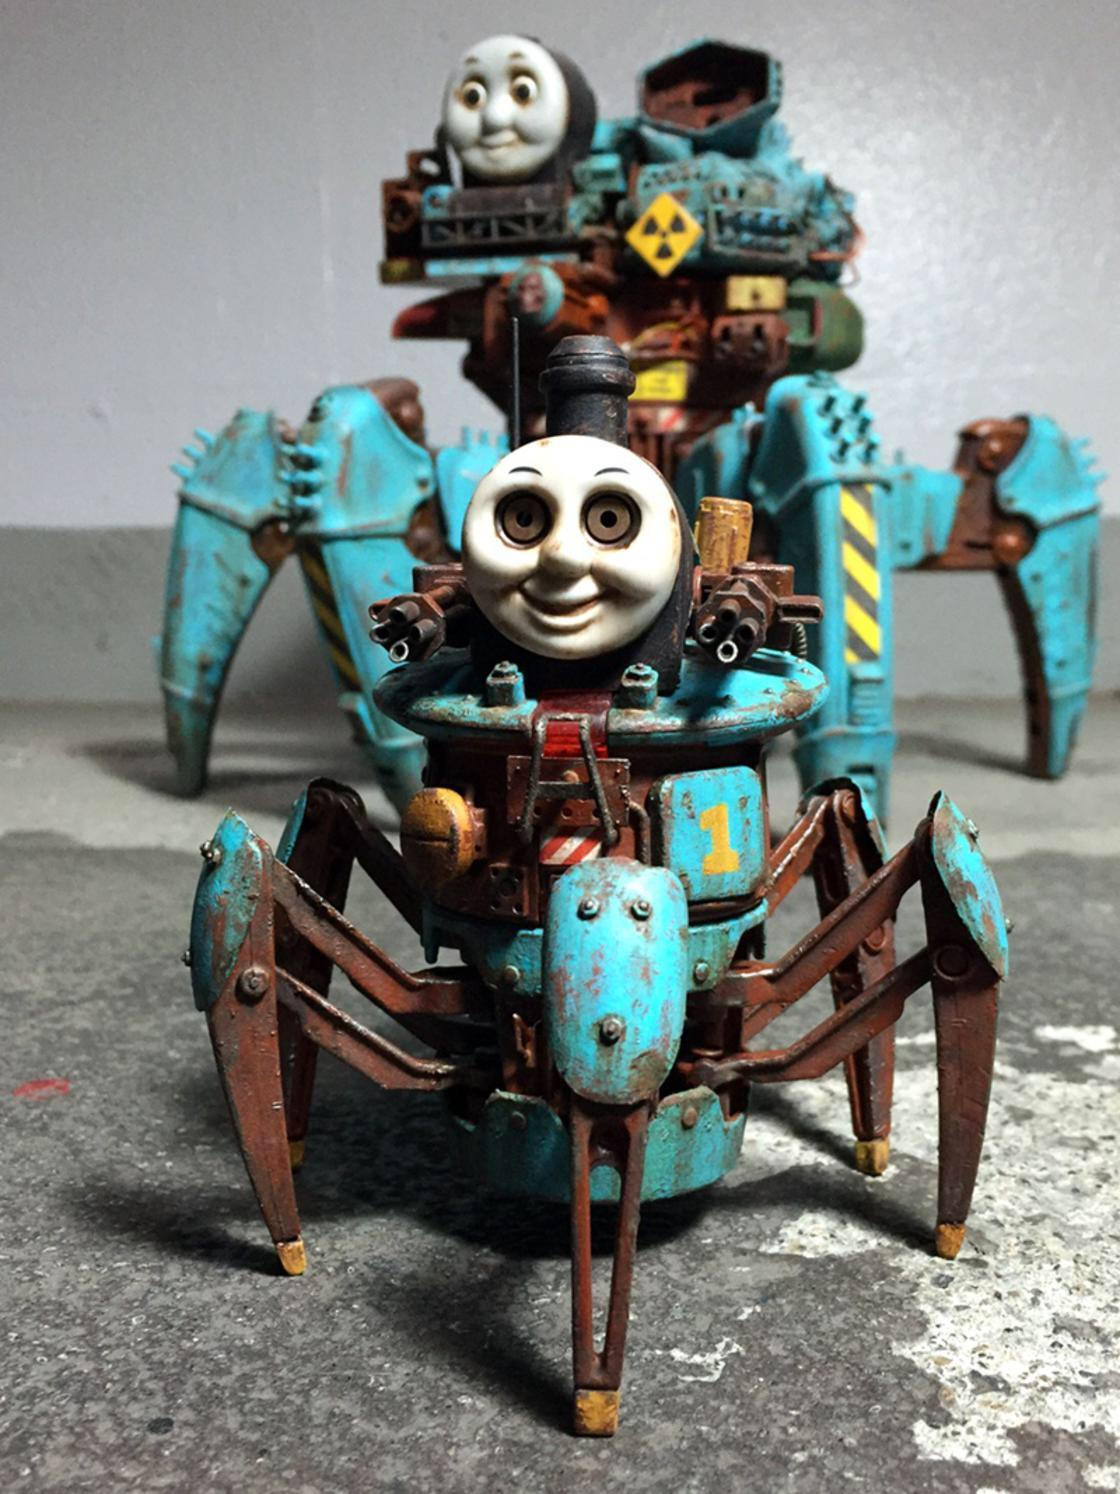 Mecha Thomas - Cheekibreeki401k - bit.ly2FrpmzC